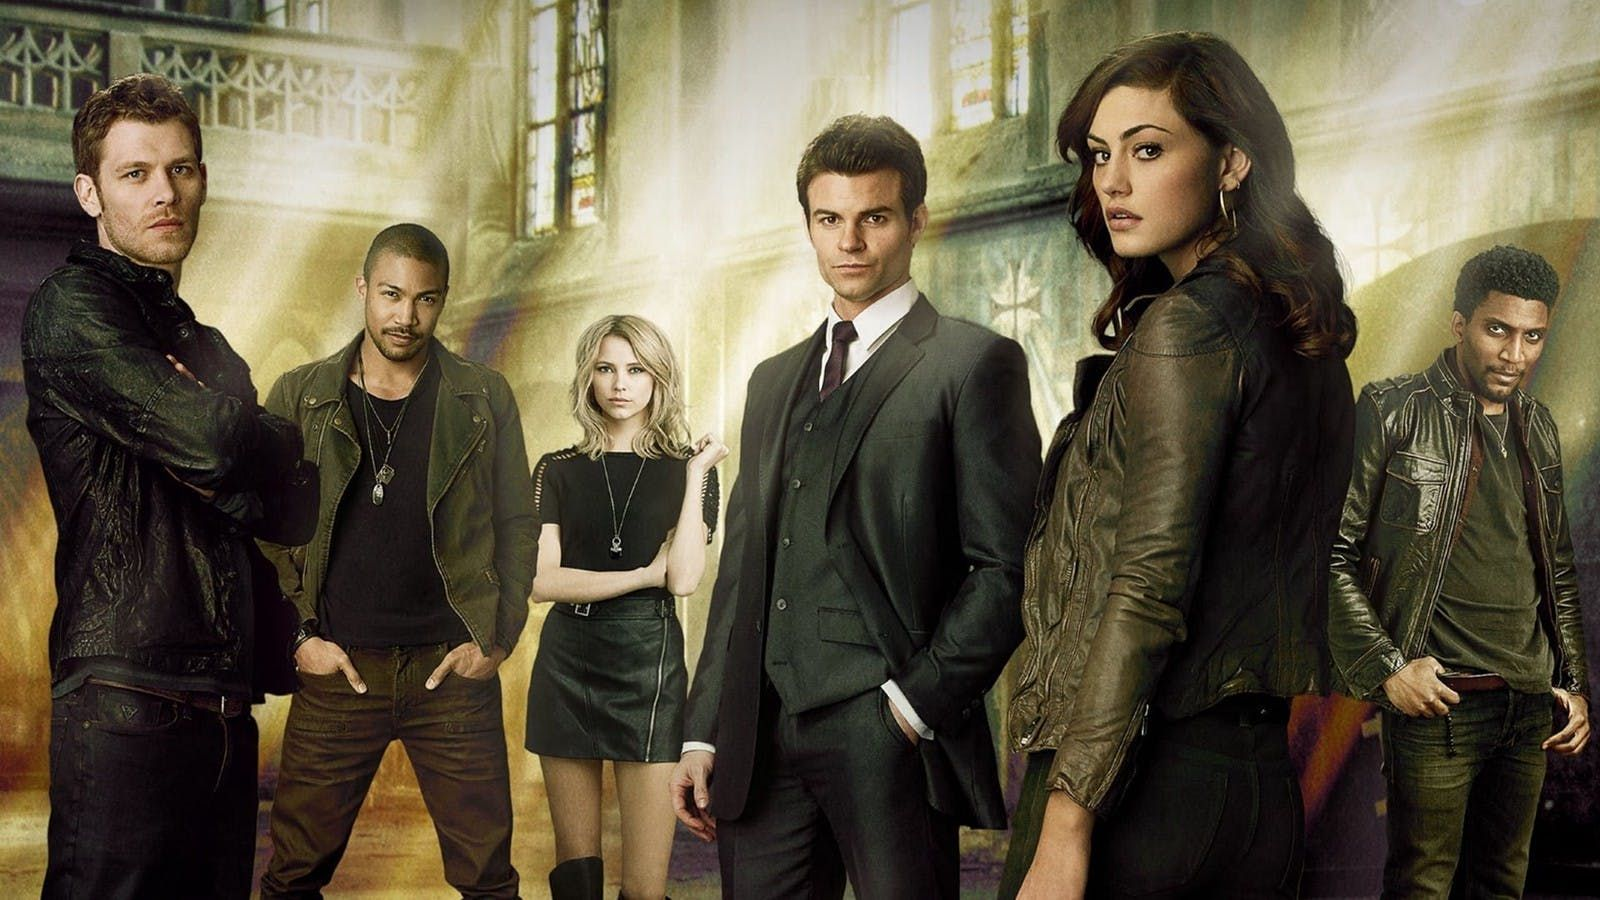 The Originals: 10 Storylines That Were Never Resolved